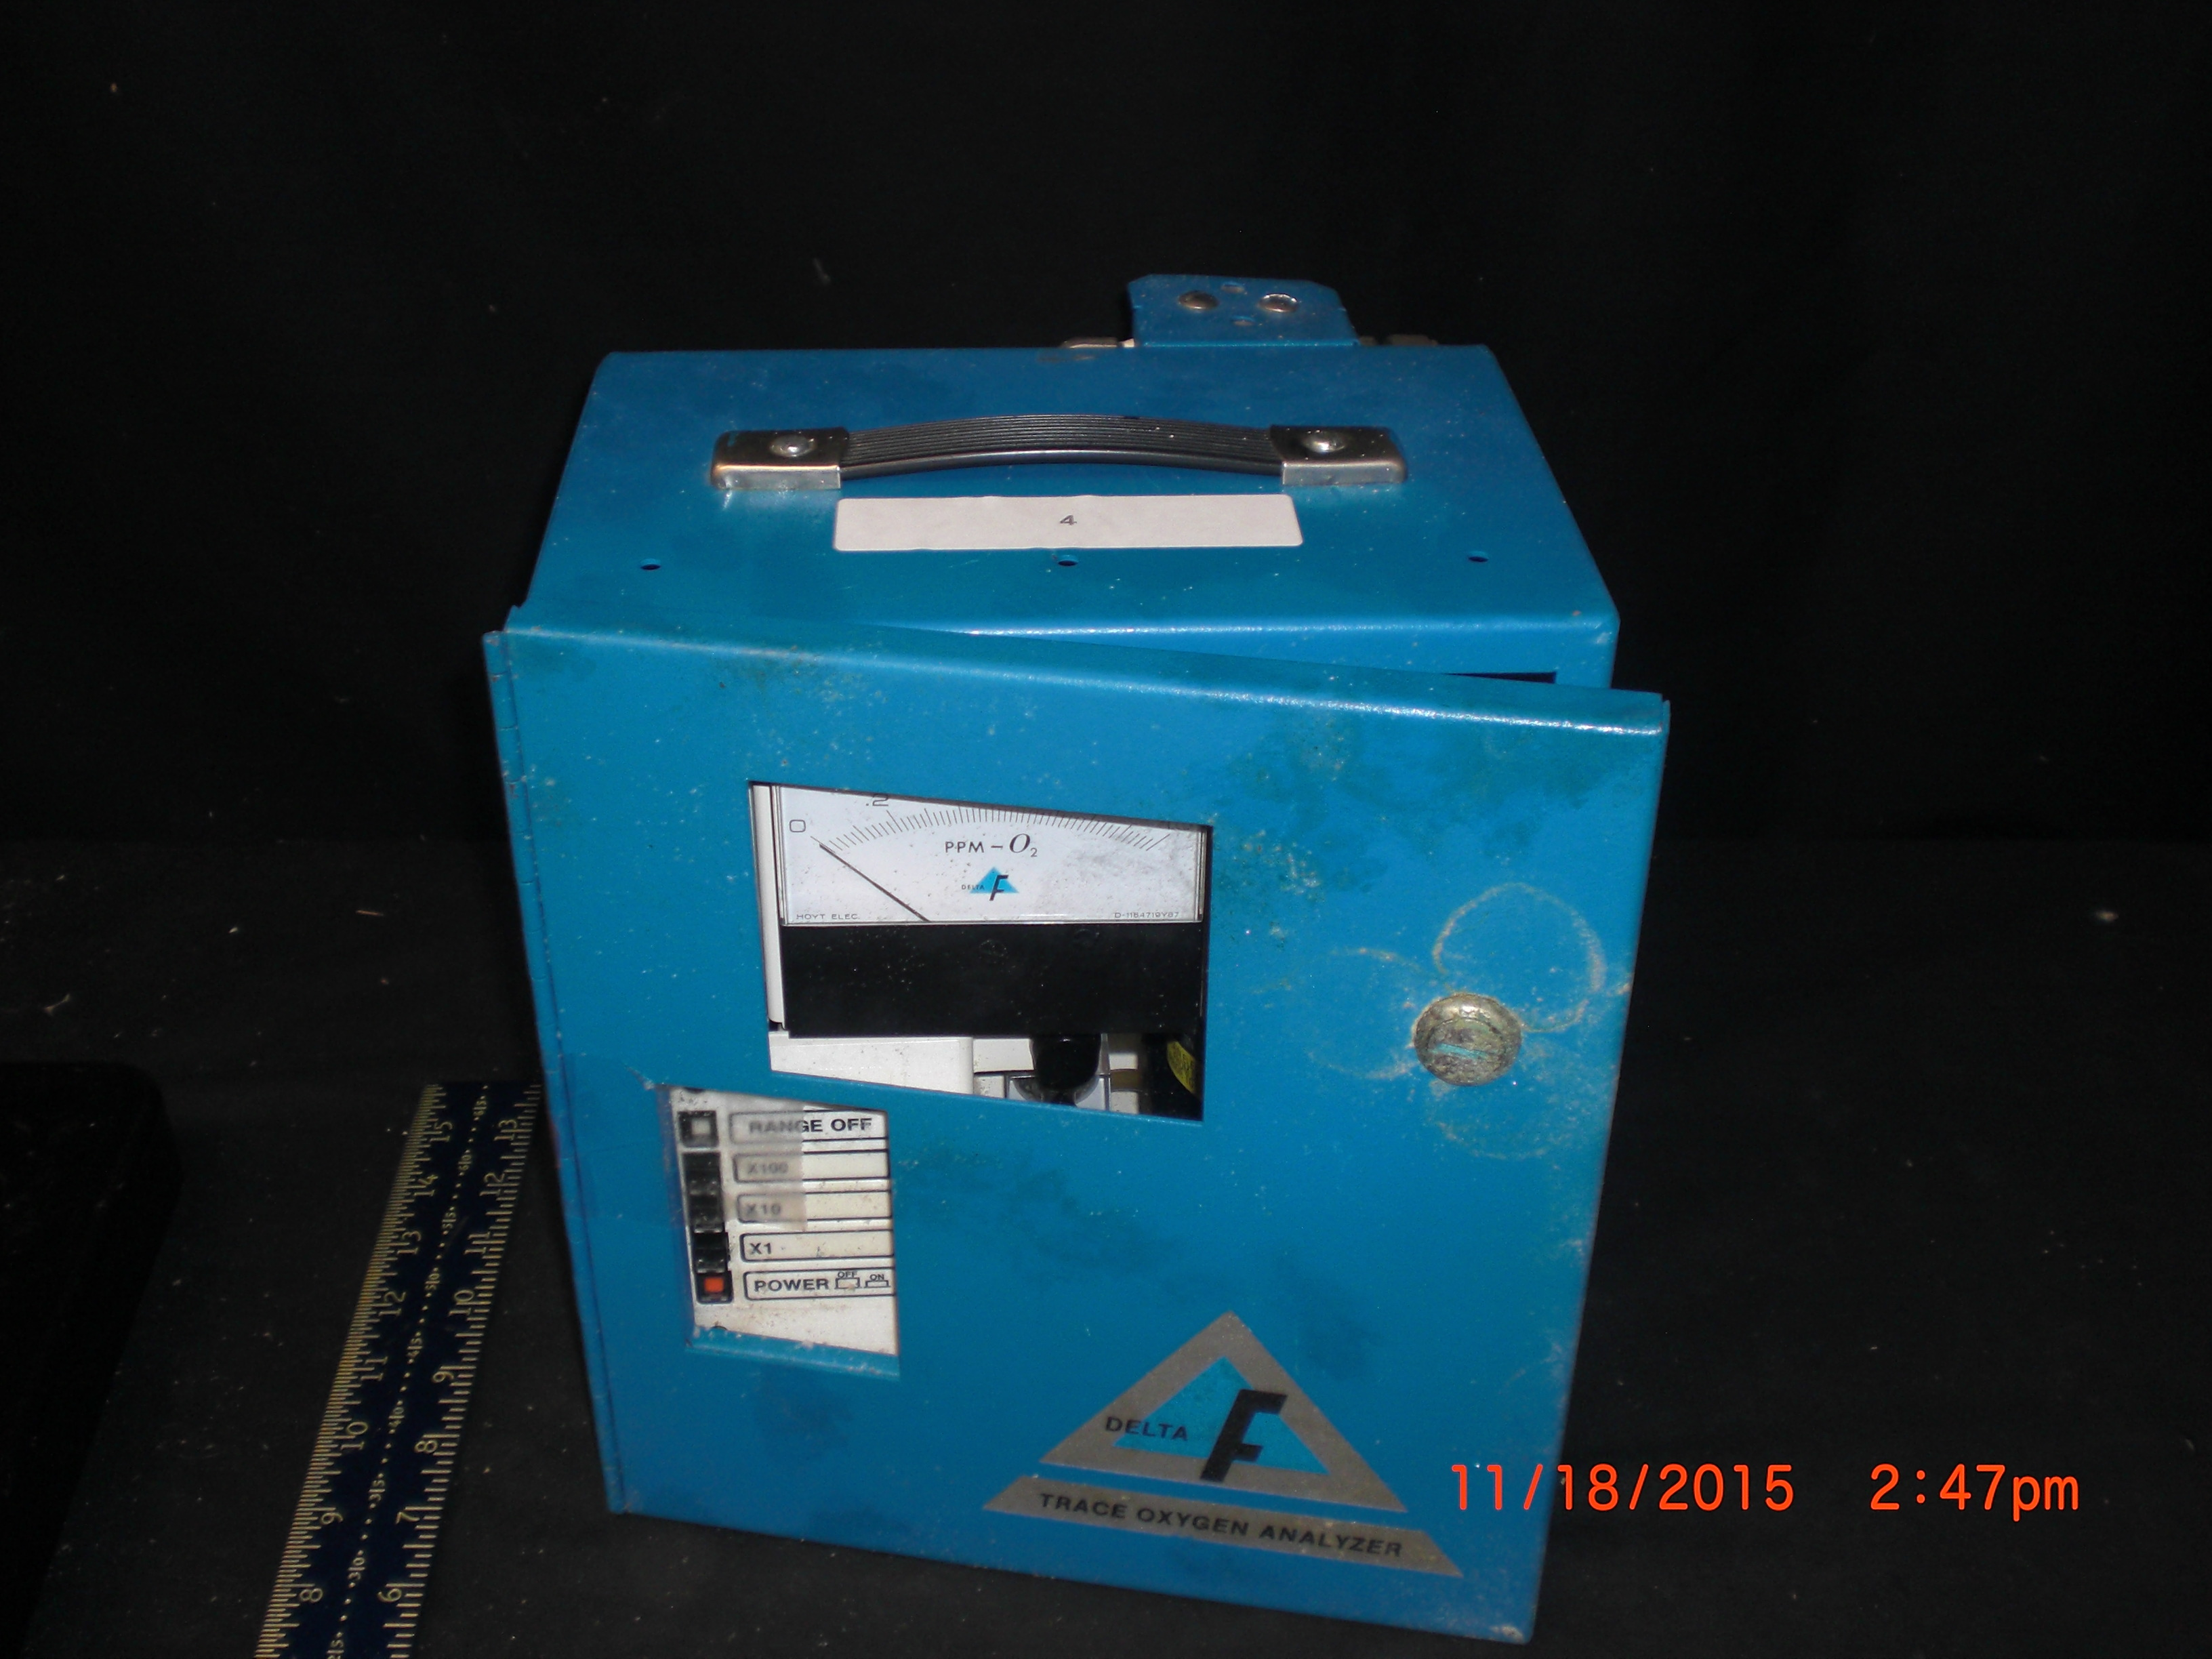 Instrument DELTA F Fa30111A Trace Oxygen Analyzer  operation unknown w/o power cord